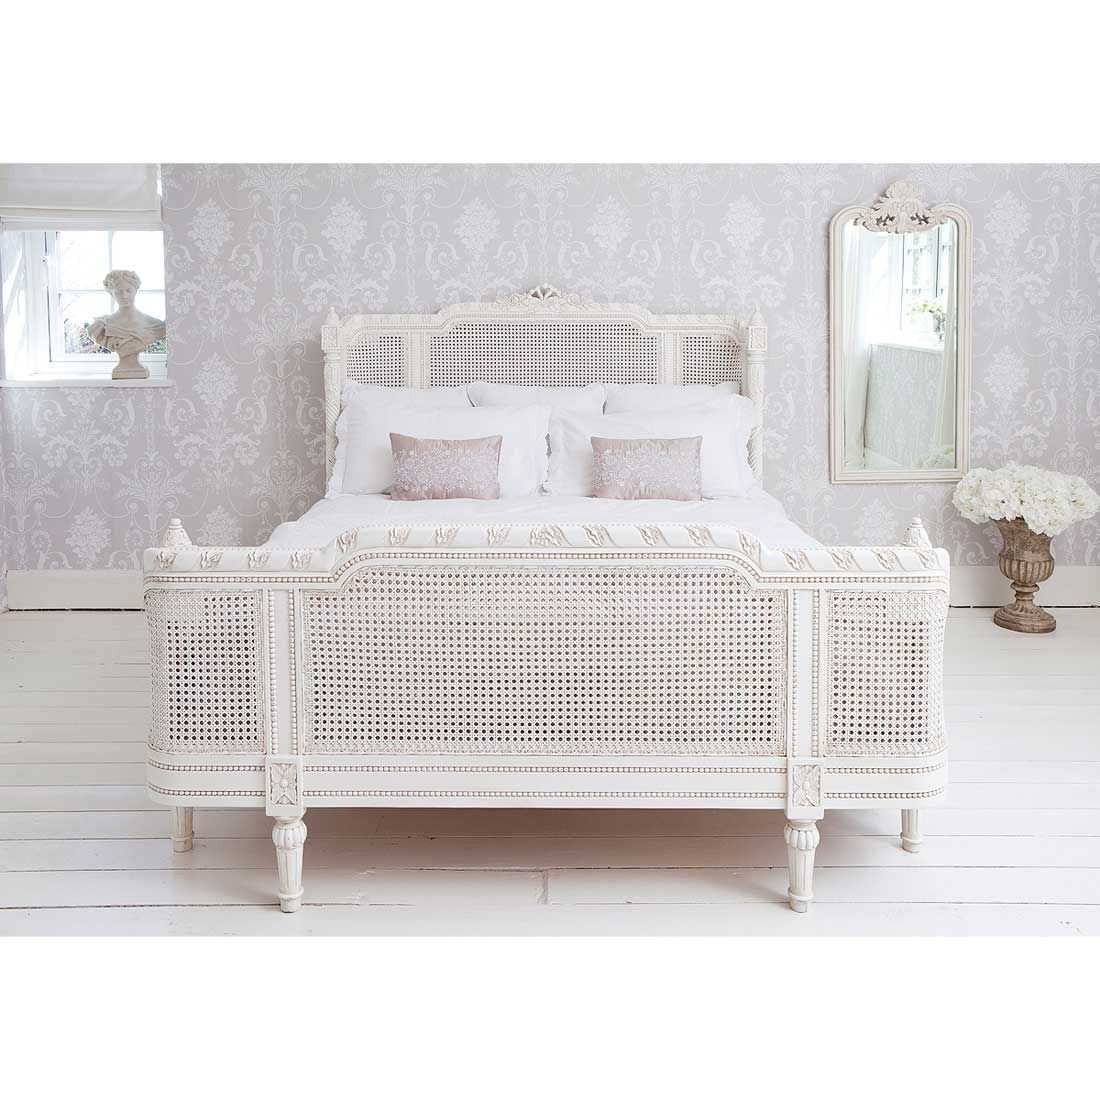 French Bed Provencal Lit Lit White Rattan King Bed Wicker